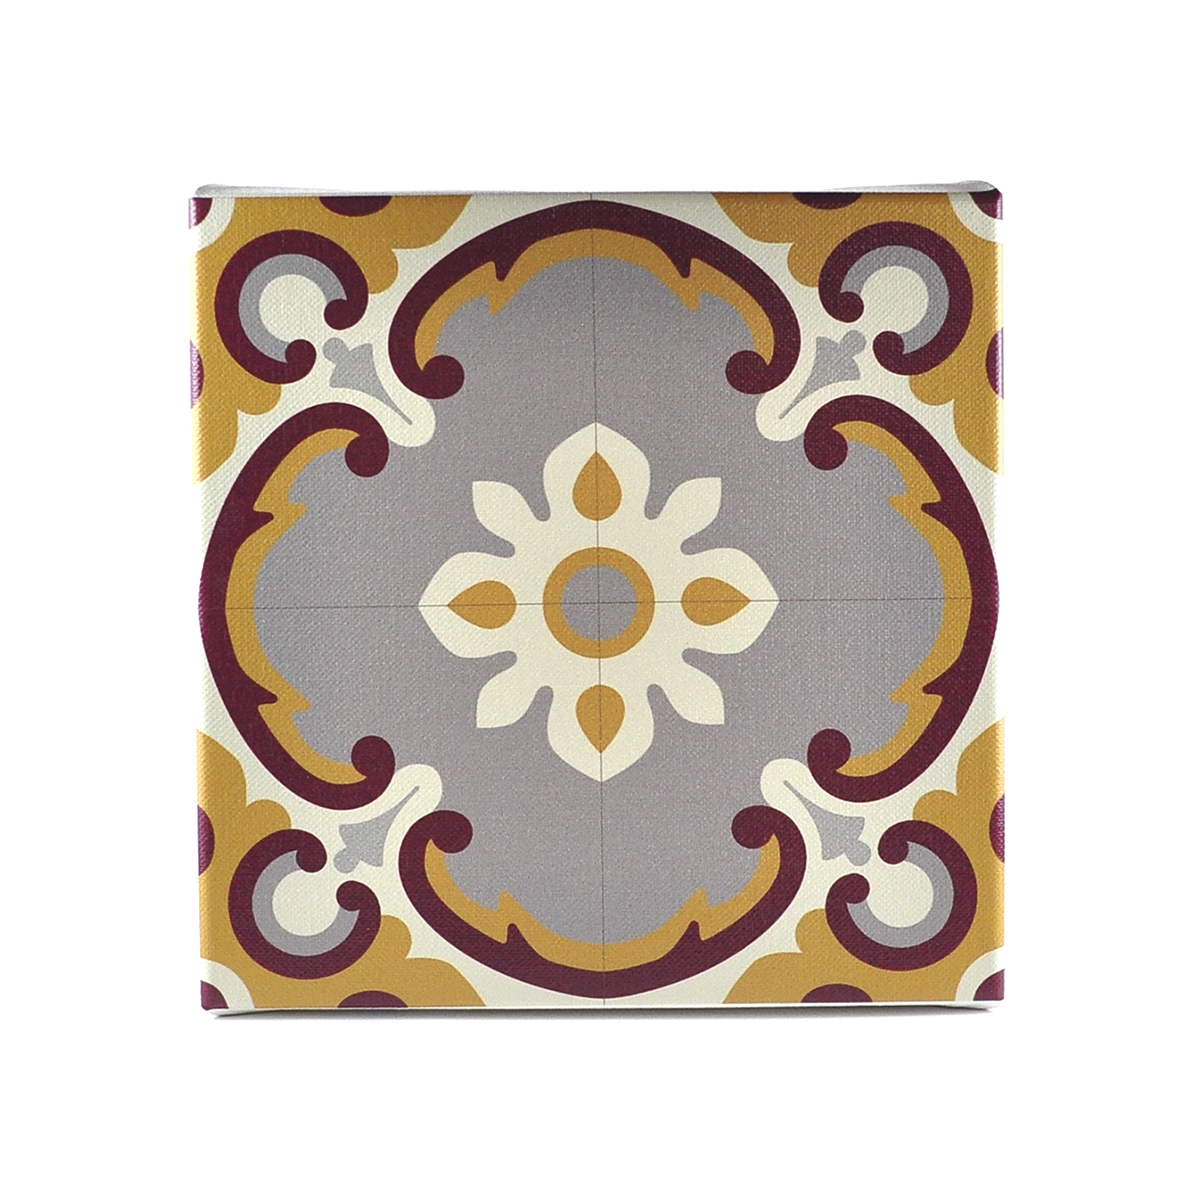 Malta Tile Canvas Block, pattern no.14